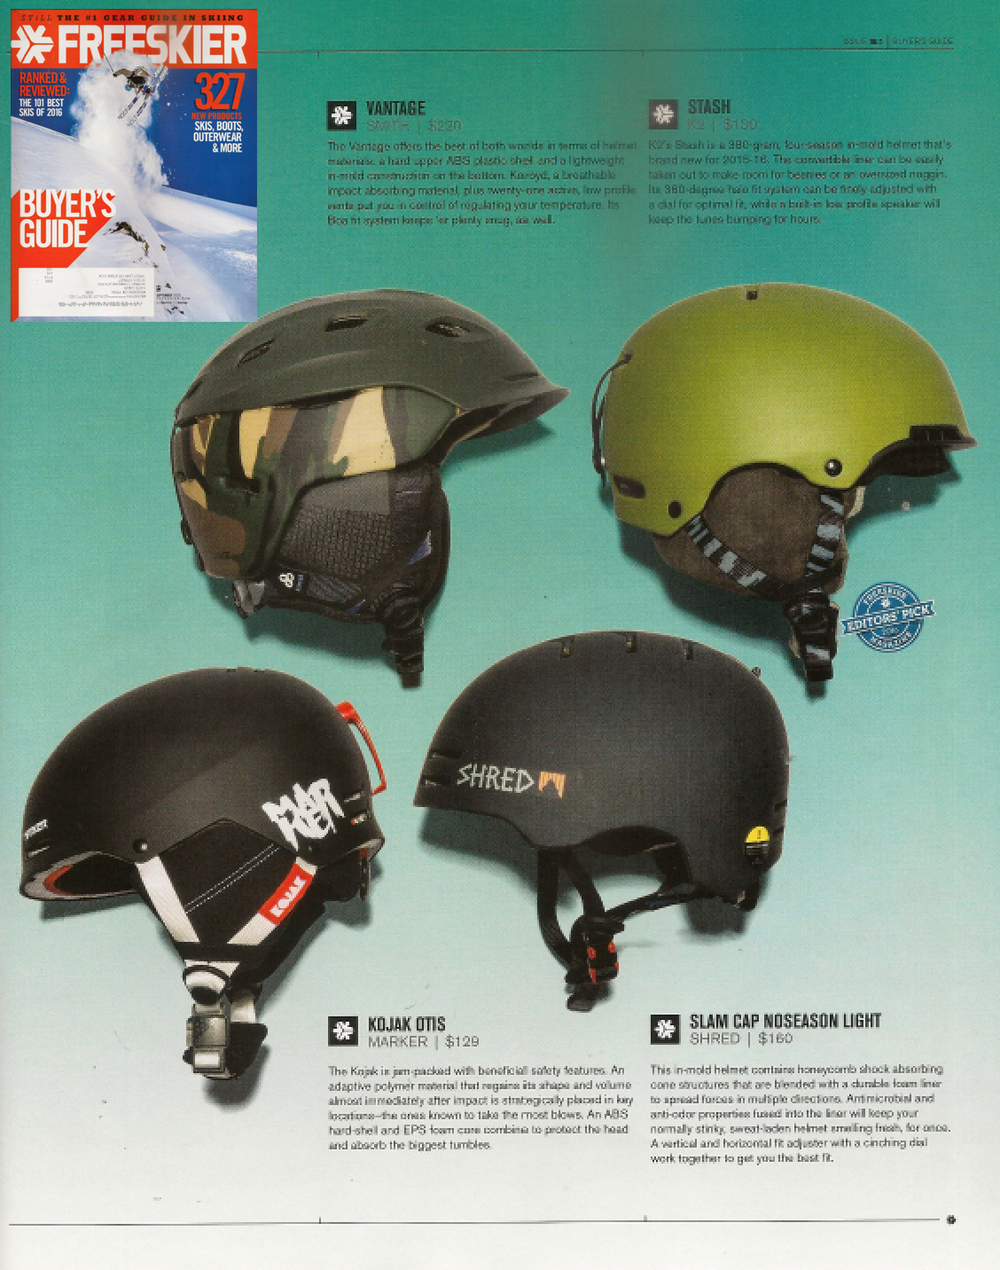 Freeskier, September 2014